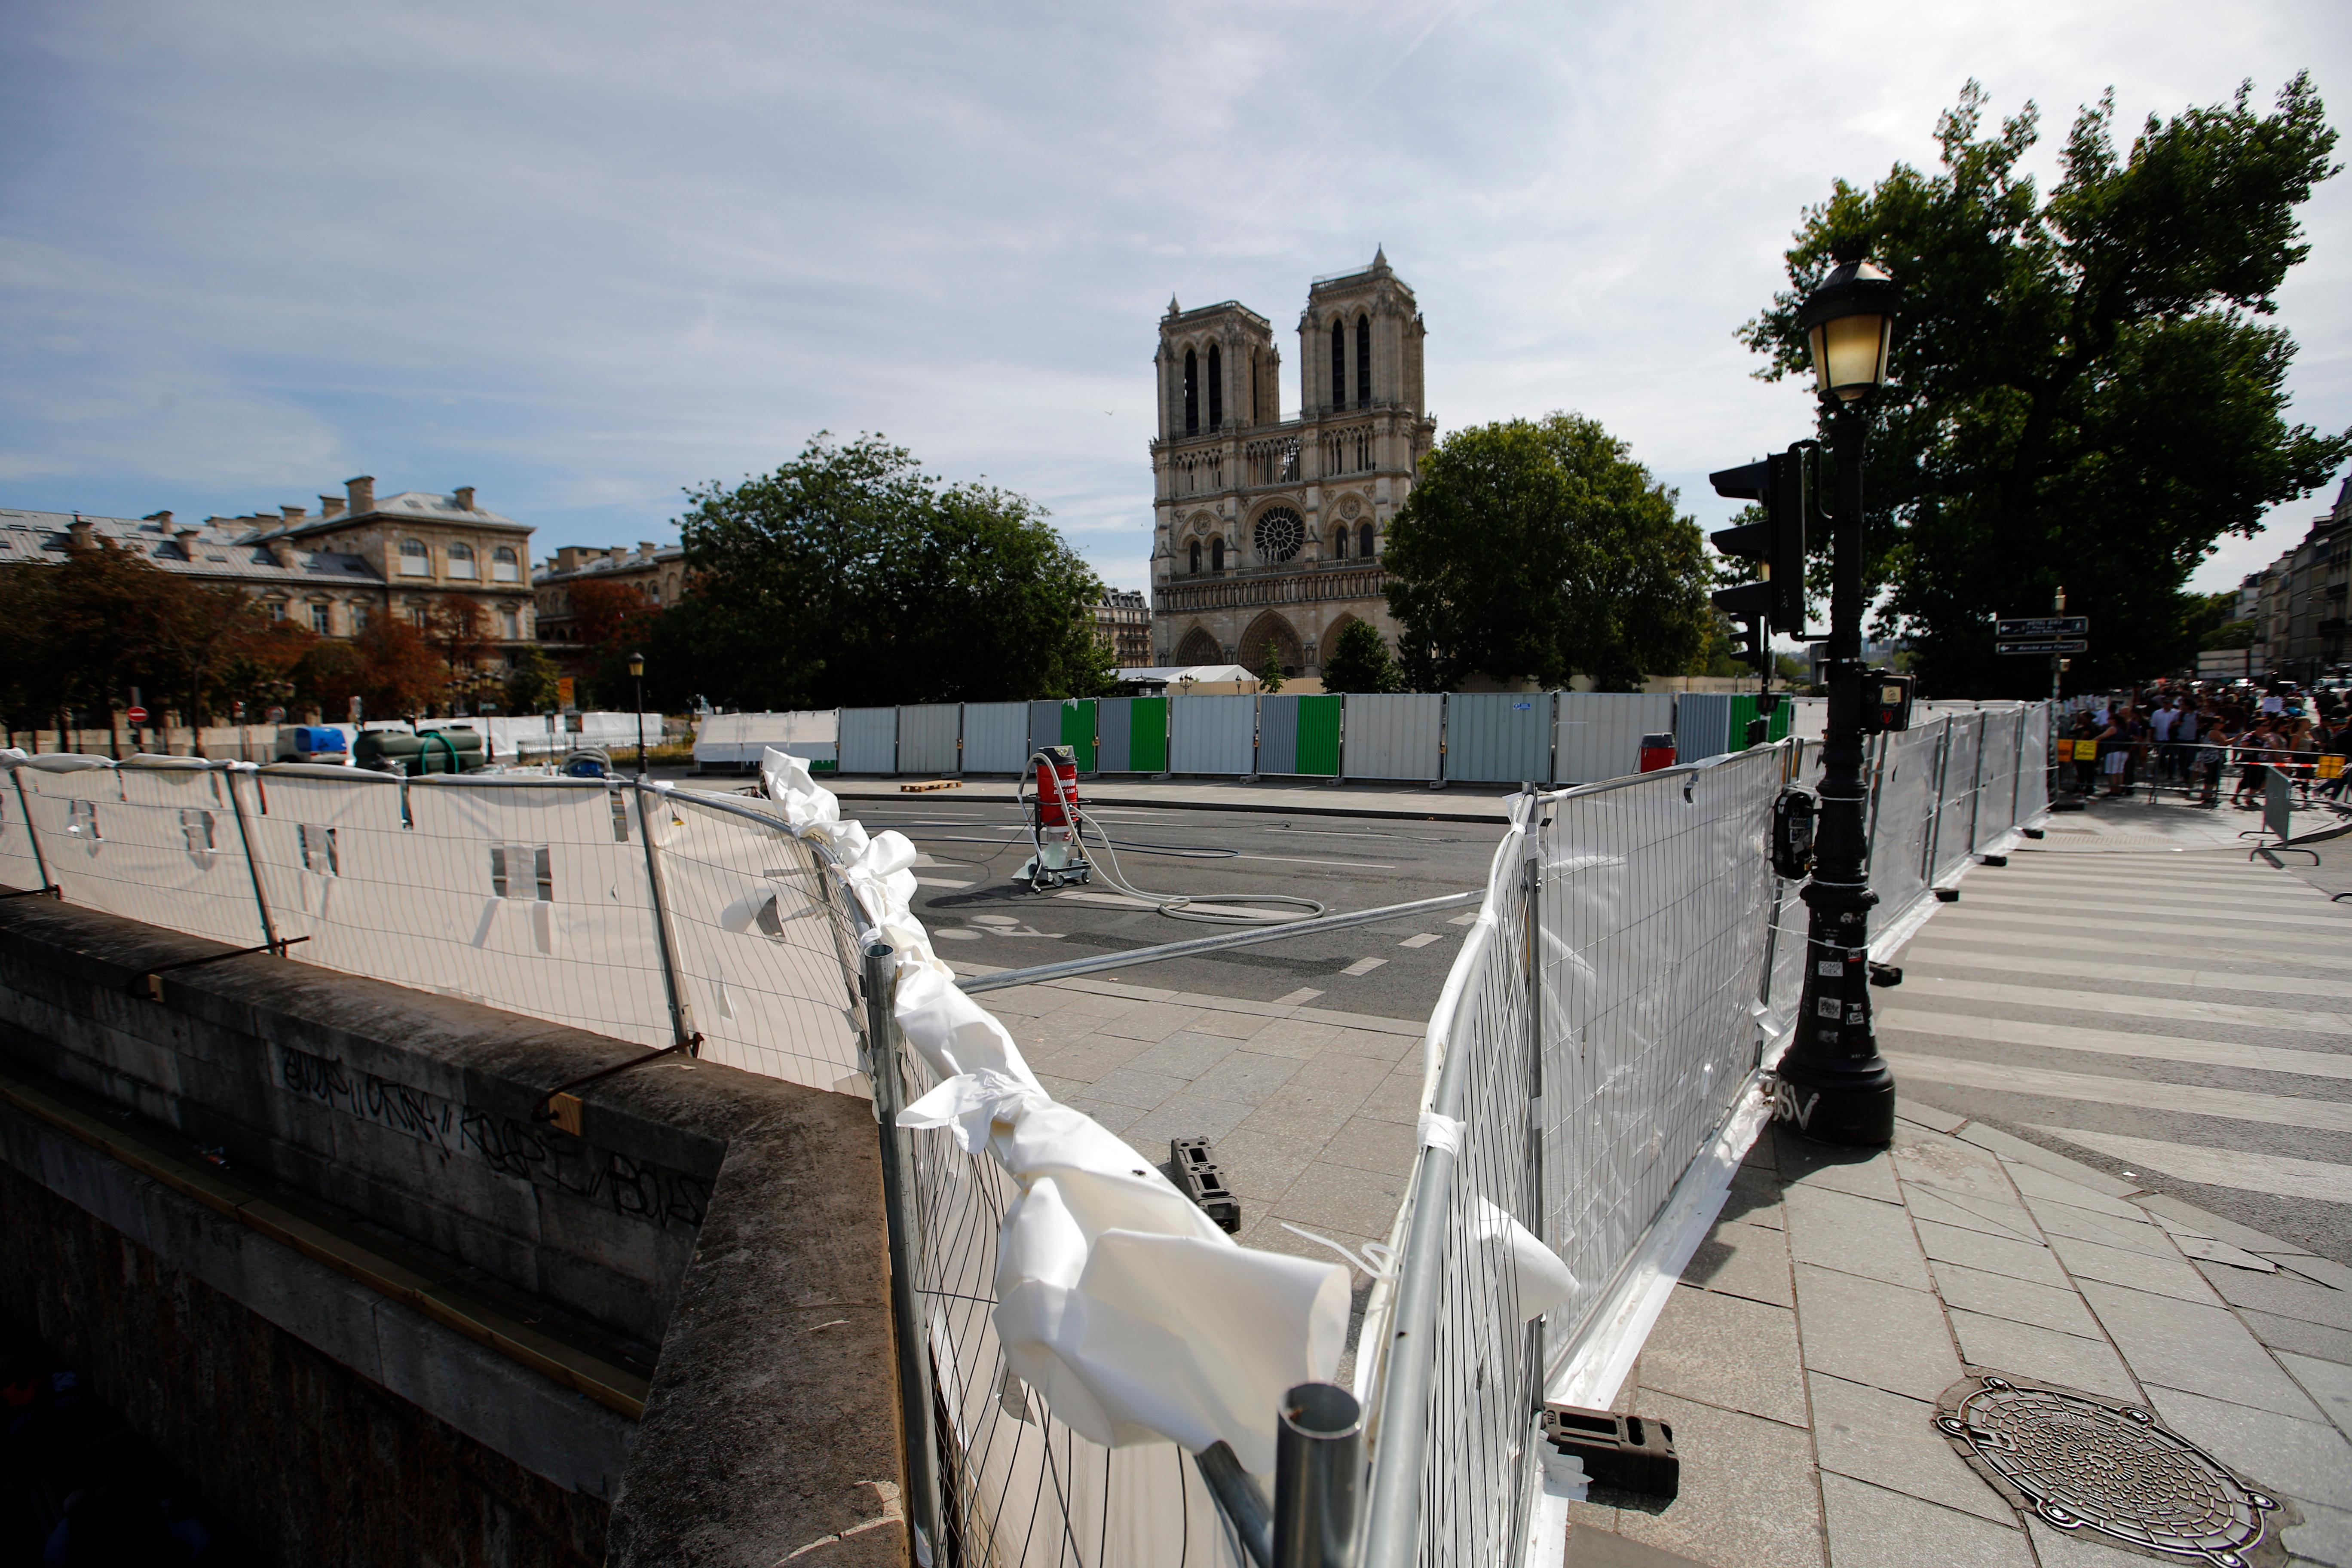 A vacuum cleaner stands amid protection panels securing a perimeter around the Notre Dame Cathedral ahead of the start of a massive lead decontamination in Paris, Friday, Aug. 16, 2019. (AP Photo/Francois Mori)